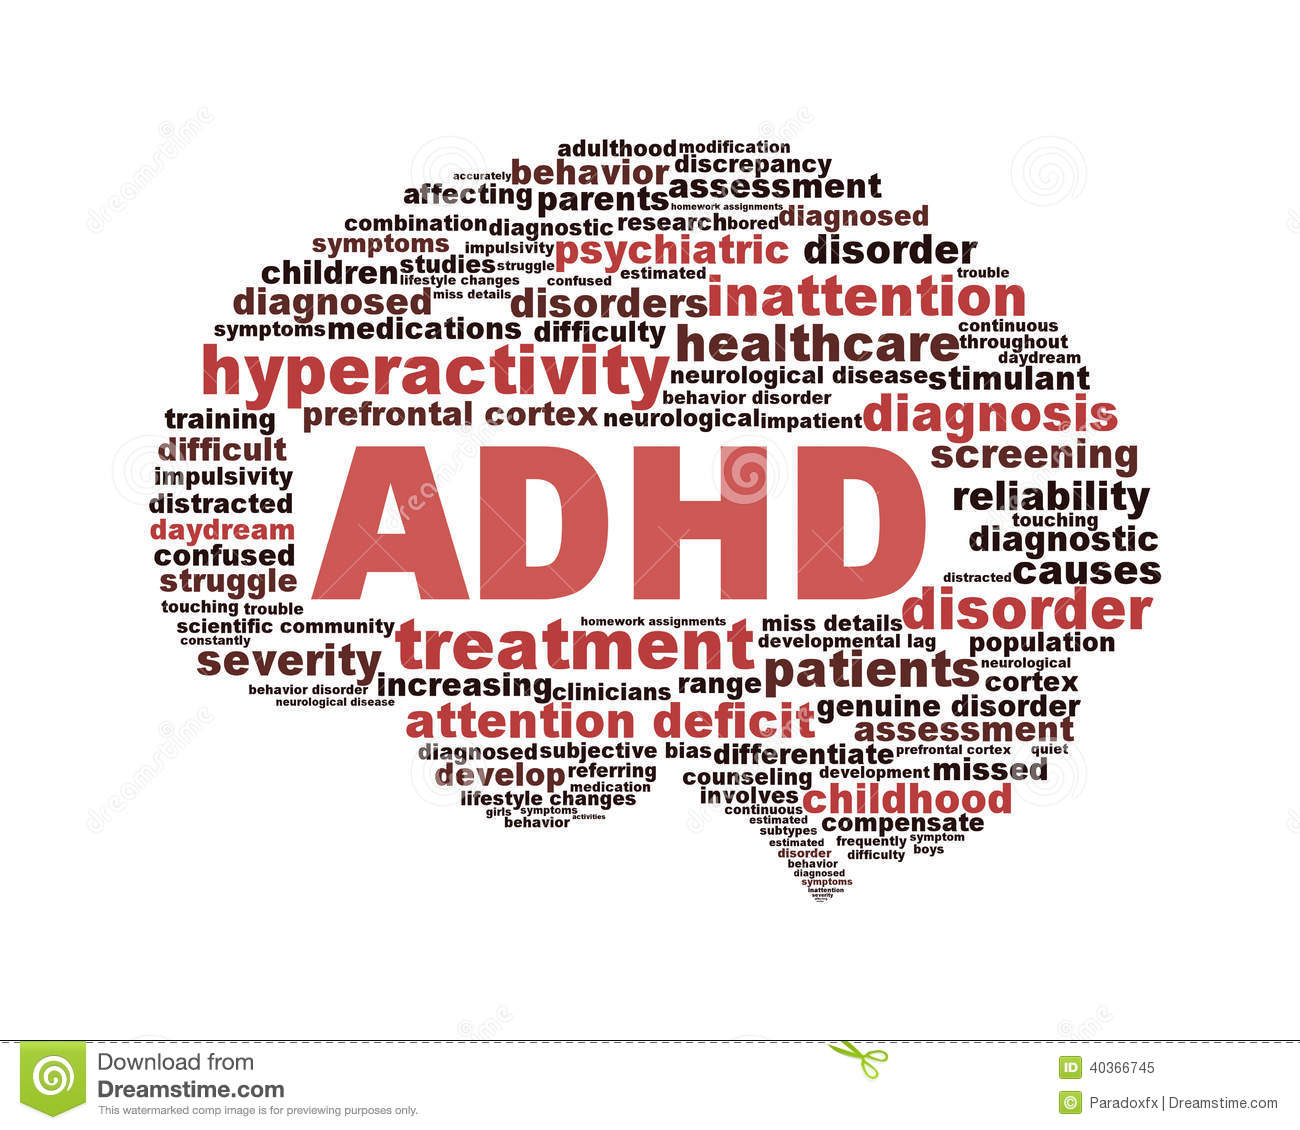 Critical issue analysis is attention deficit hyperactivity disorder